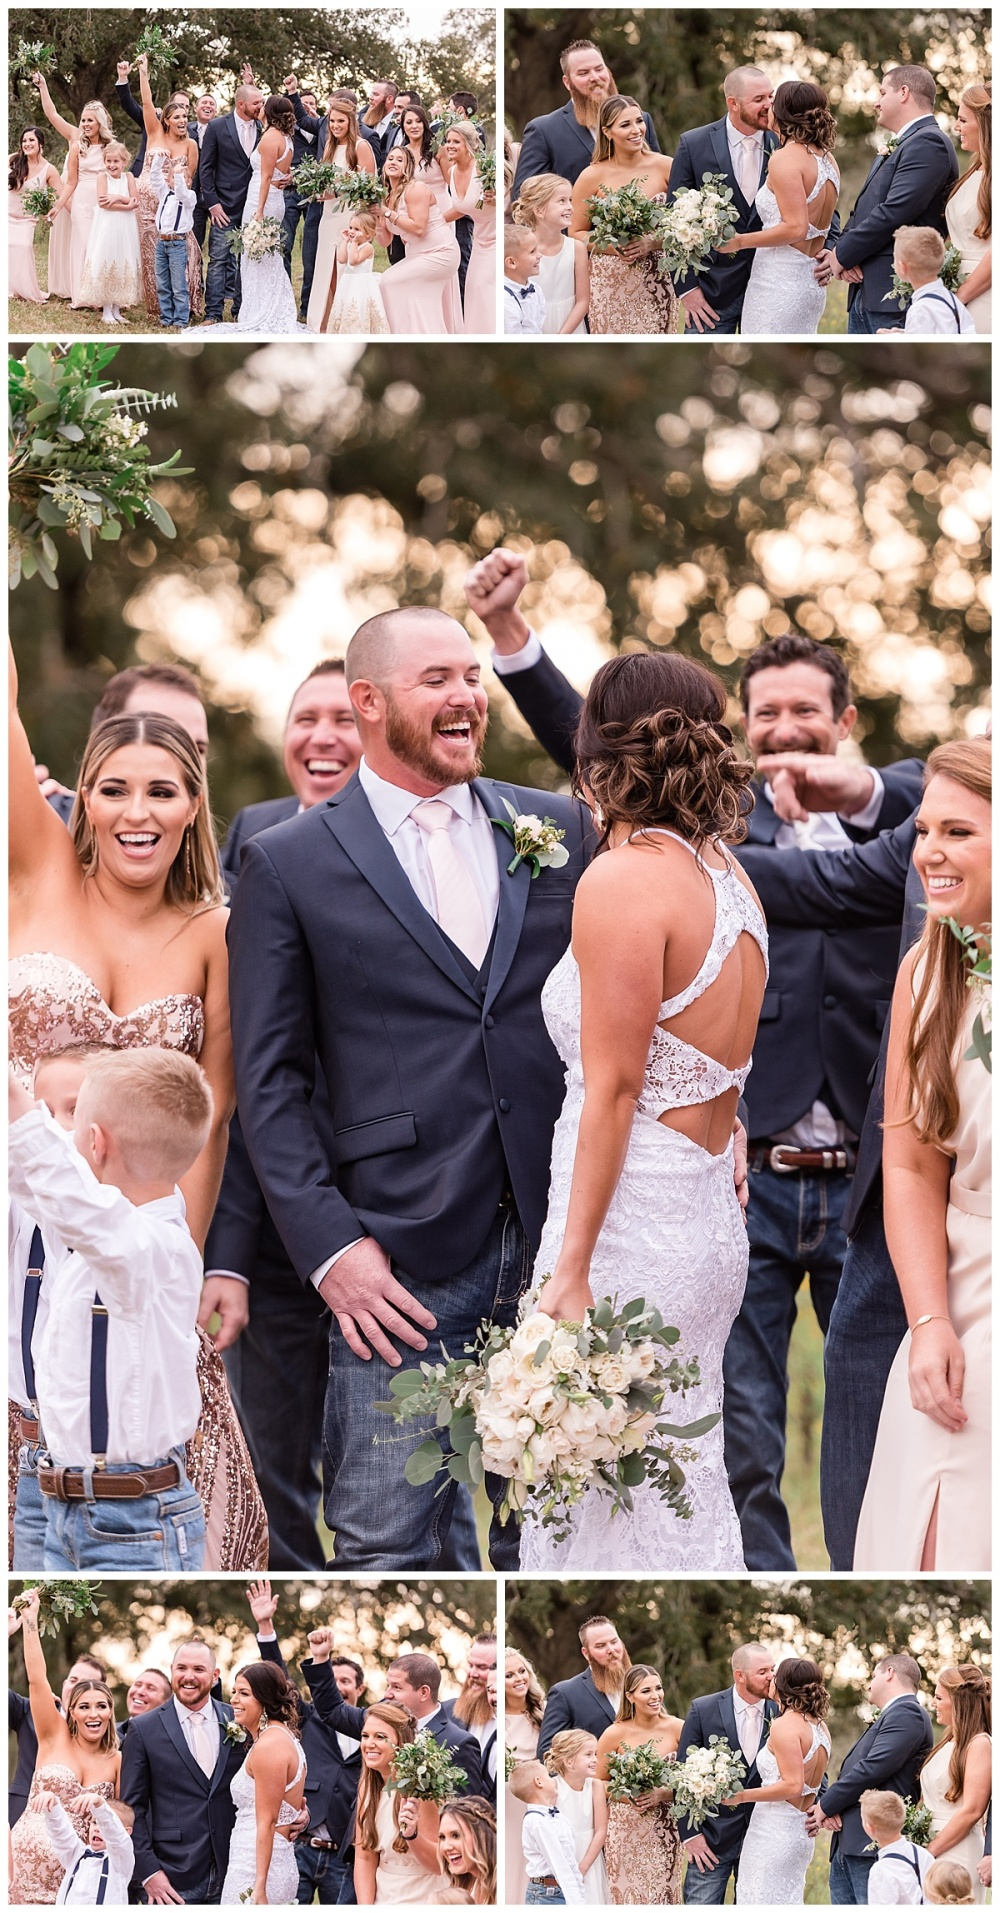 South-Texas-Wedding-Photographer-Rose-Gold-and-Navy-Theme-LaVernia-Bride-Groom-Carly-Barton-Photography_0056